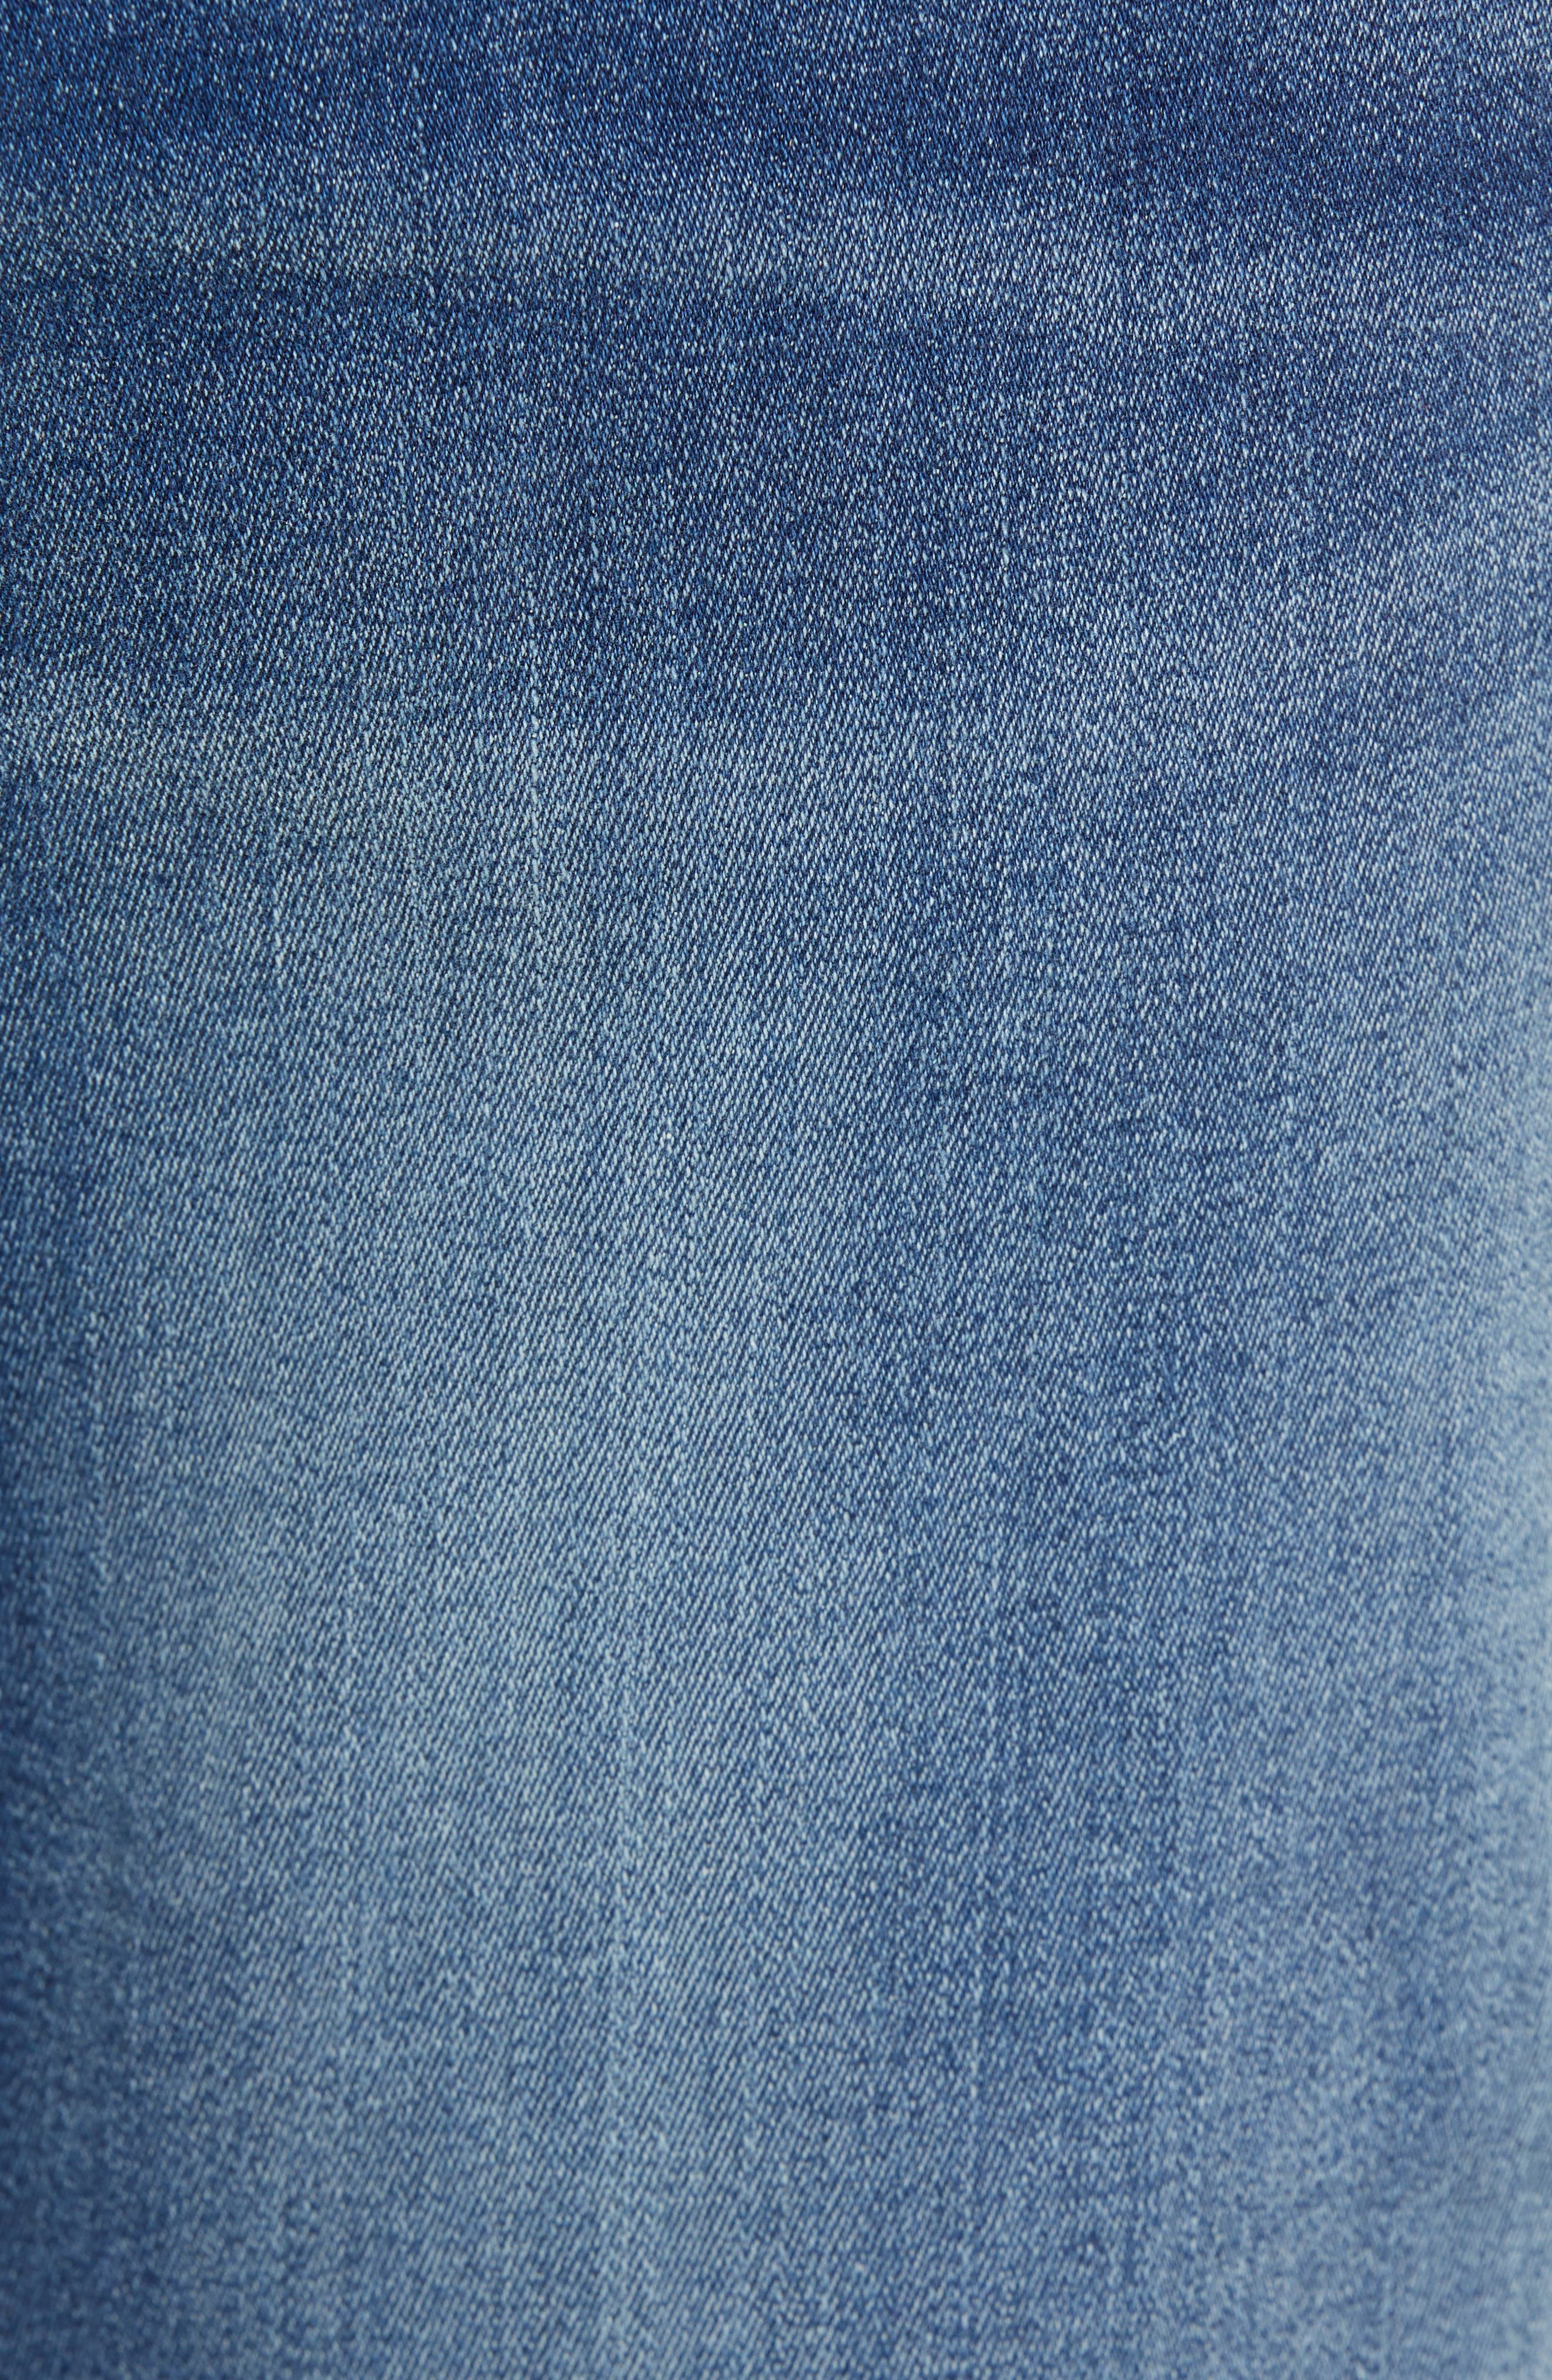 Ricky Relaxed Fit Jeans,                             Alternate thumbnail 5, color,                             SUPERNOVA BLUES